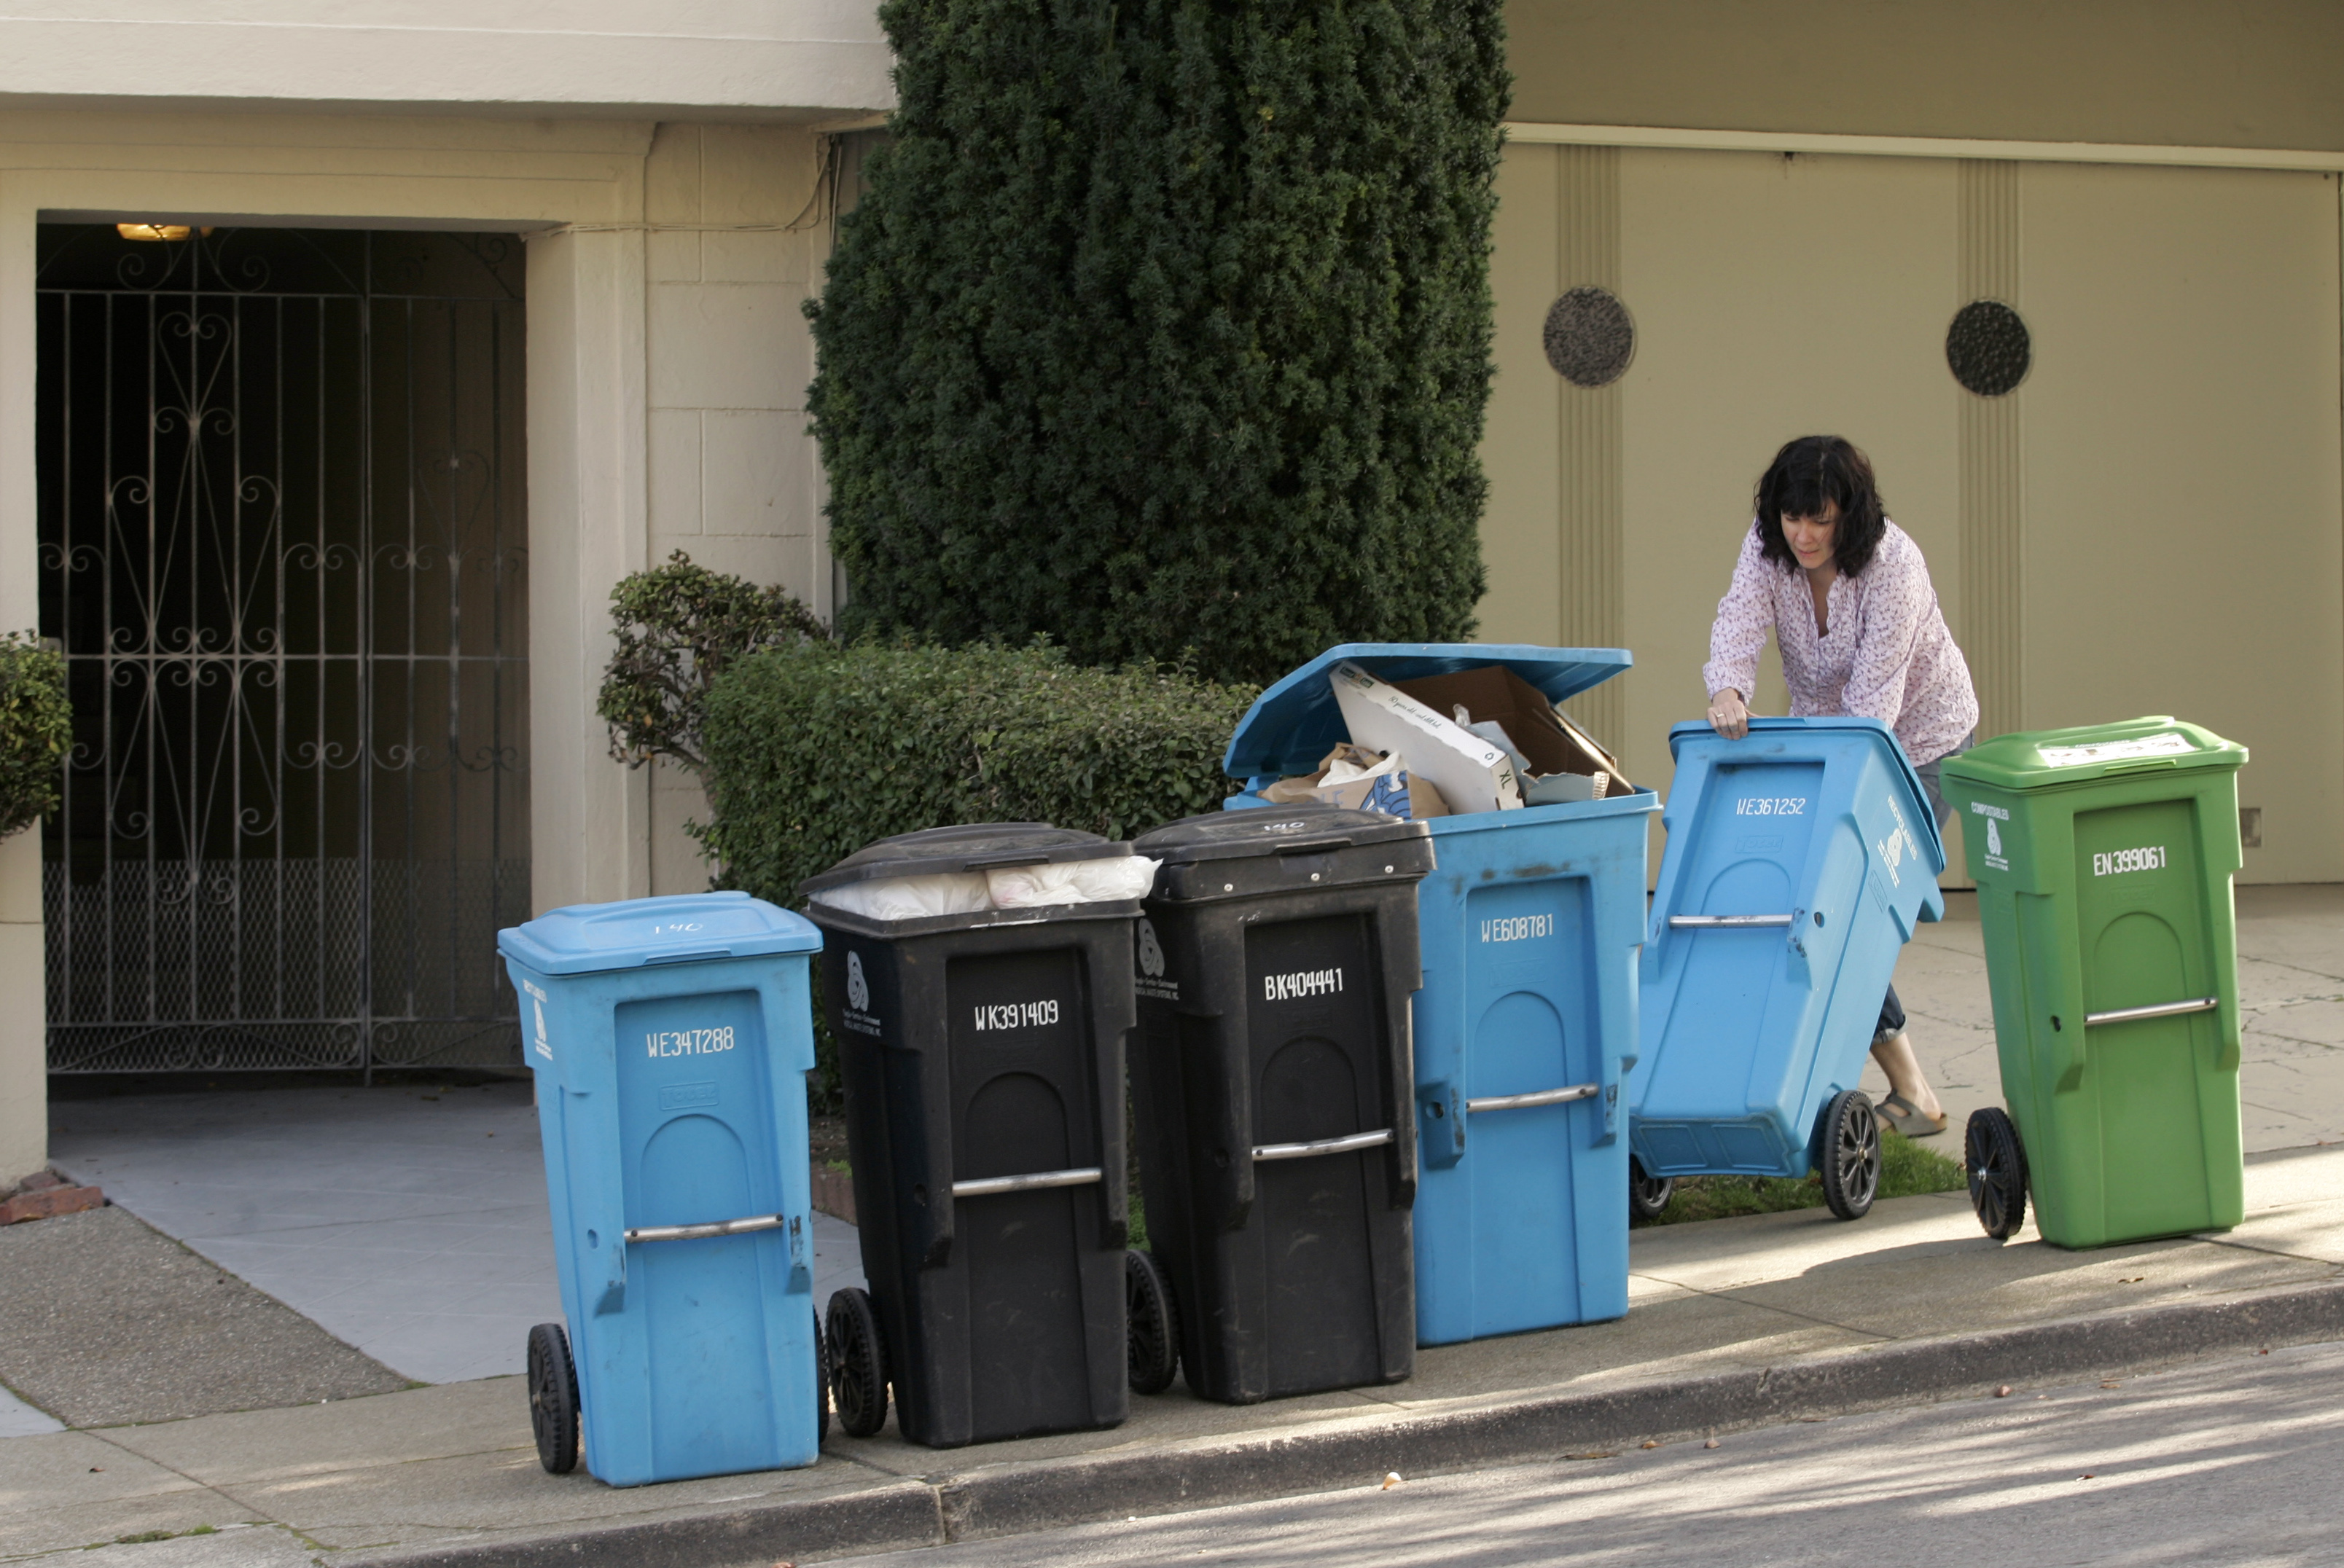 A woman puts different large garbage and recycling containers on a sidewalk.